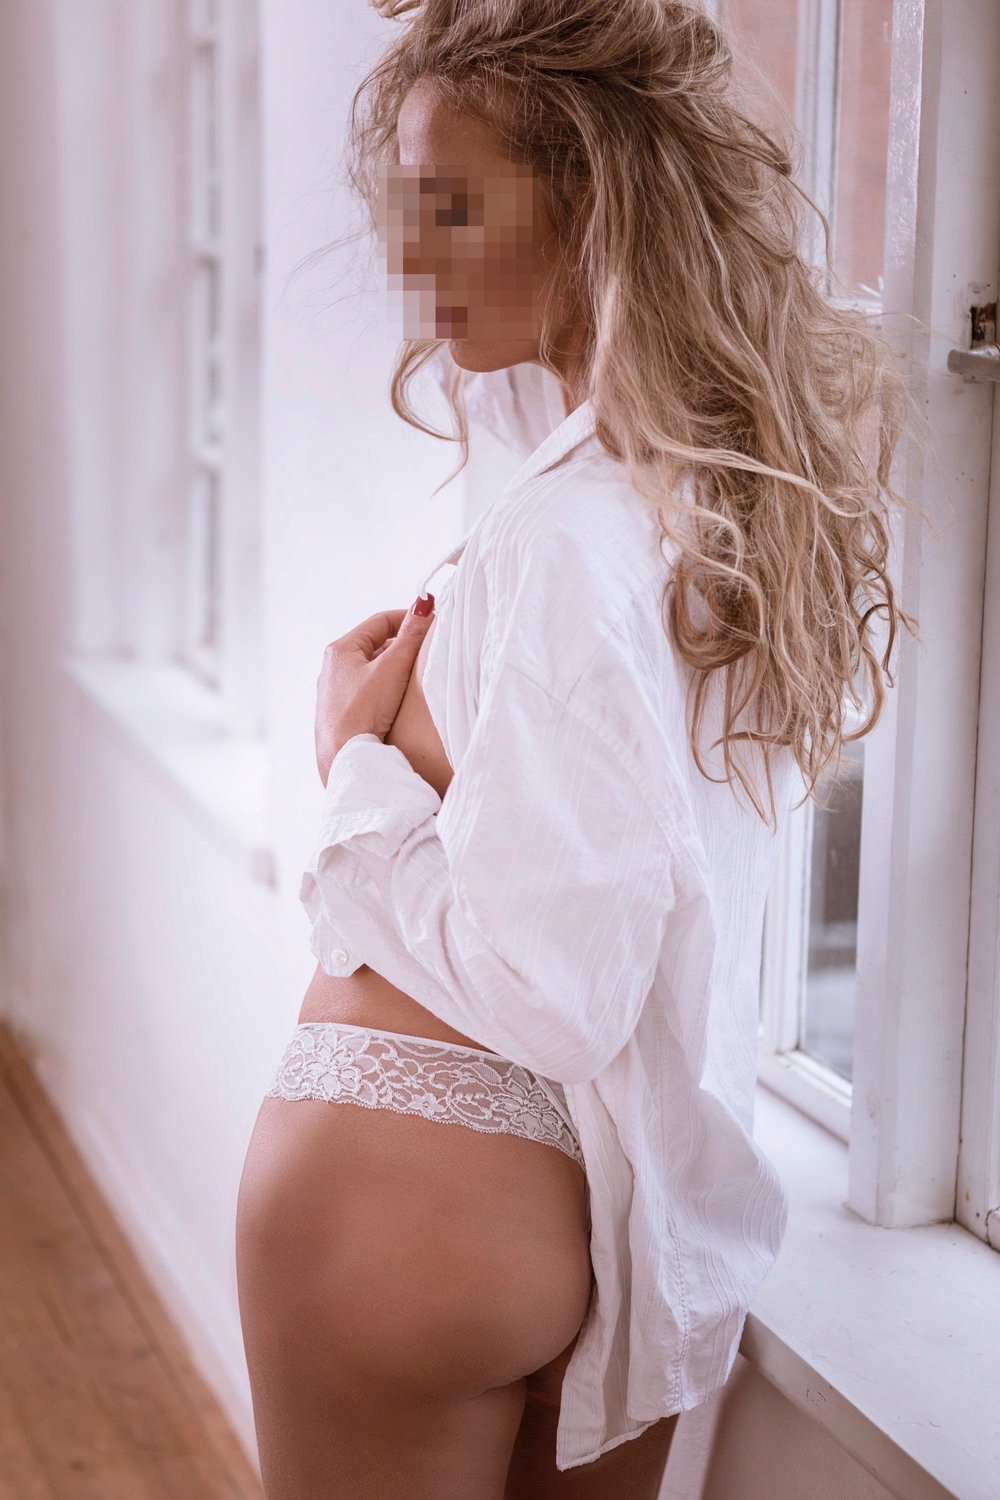 escort-flensburg-lady-madeleine-perfect-date-escort-006-2.jpg